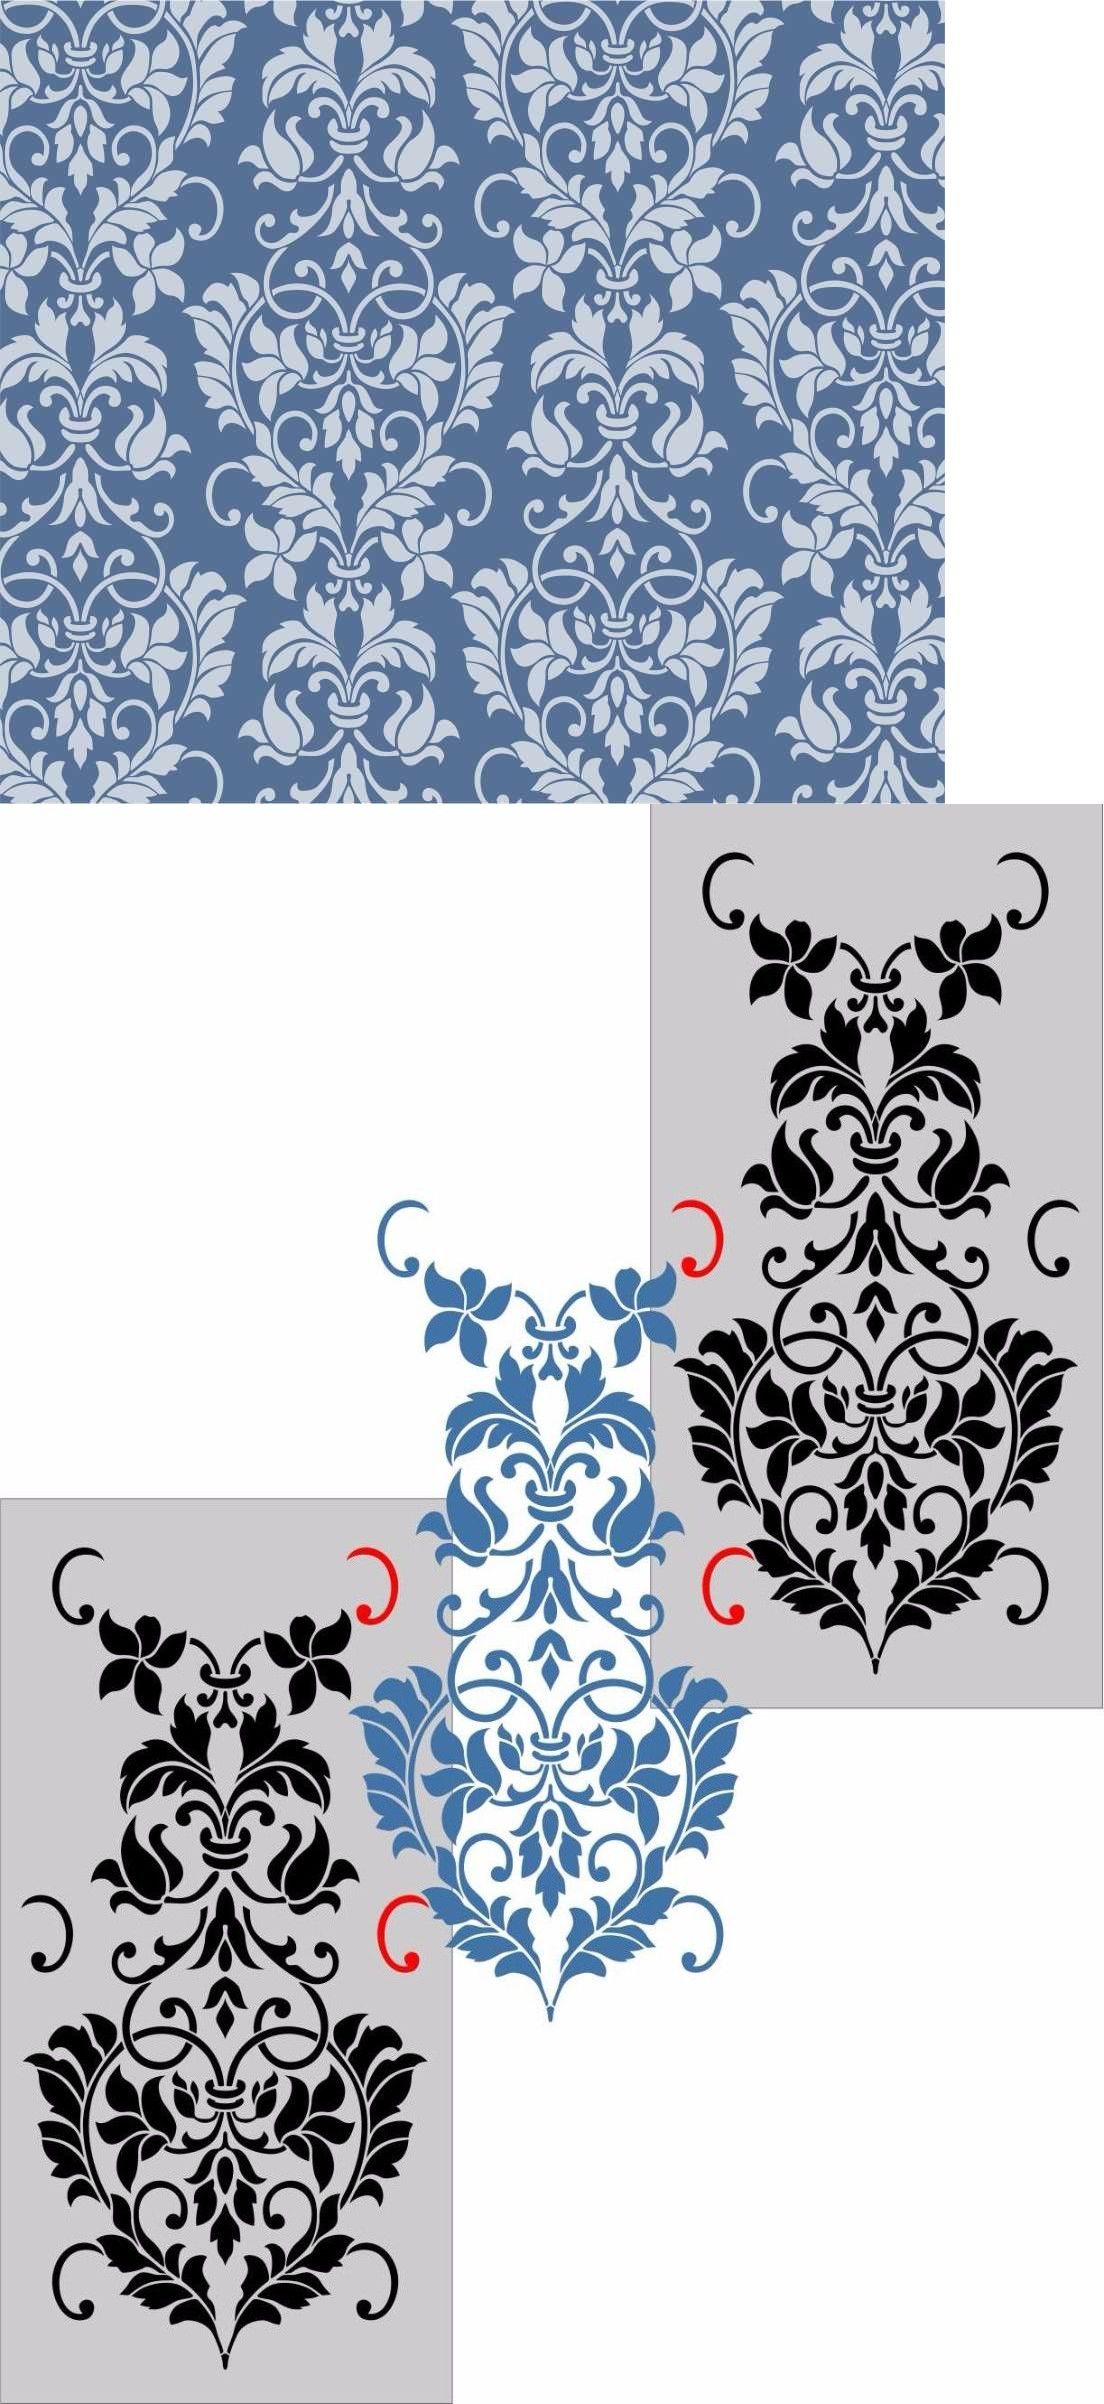 Stencils 41214 damask wall stencil template home decor art new stencils 41214 damask wall stencil template home decor art new reusable buy it amipublicfo Choice Image